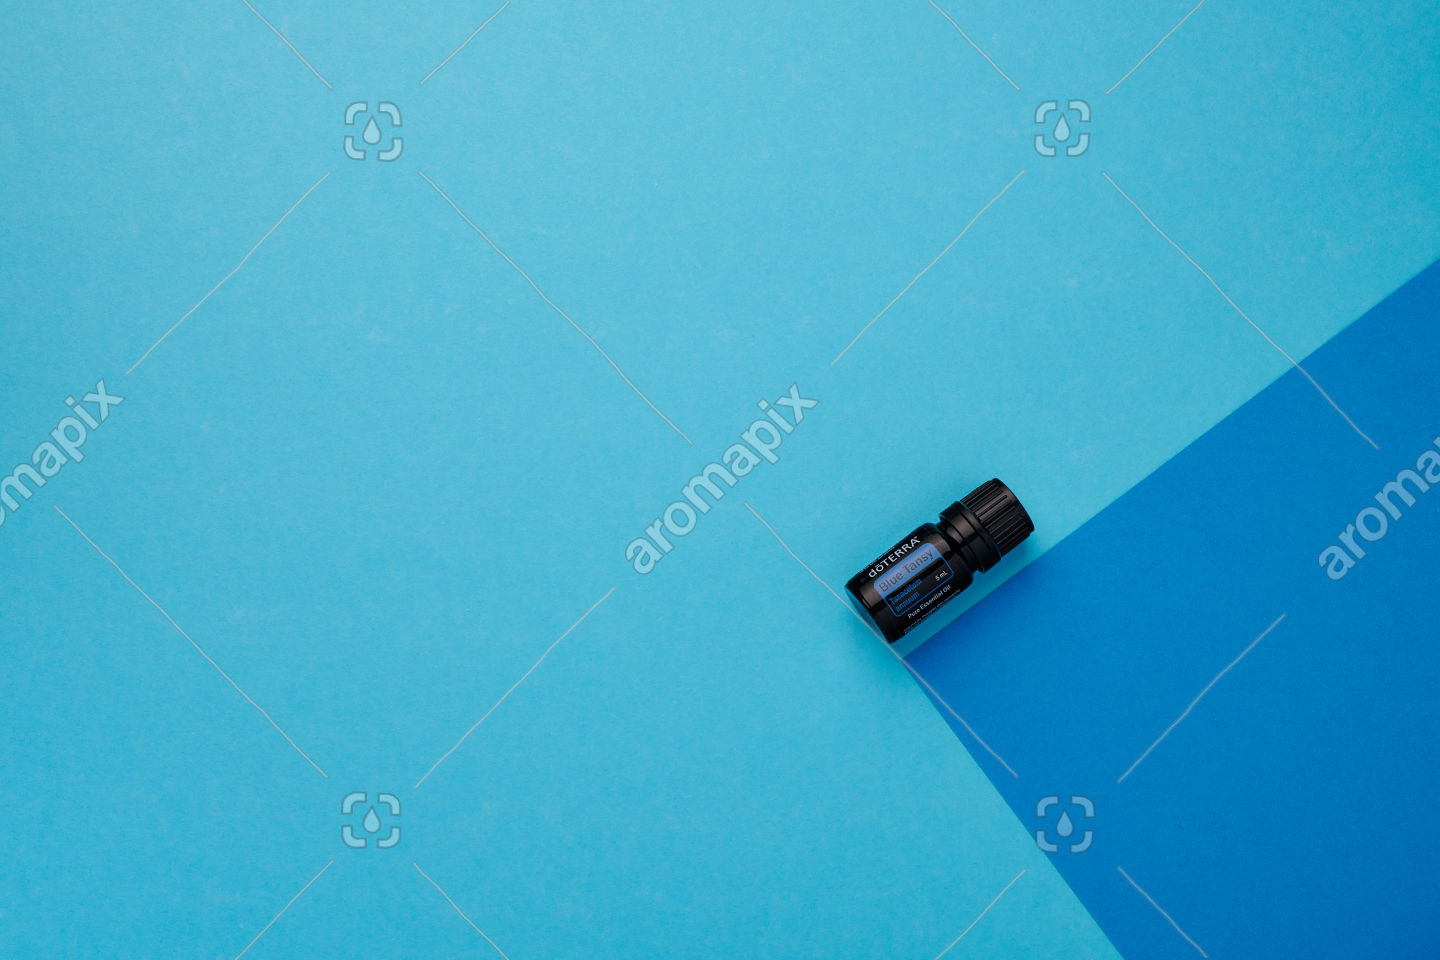 doTERRA Blue Tansy on a dark blue and light blue background